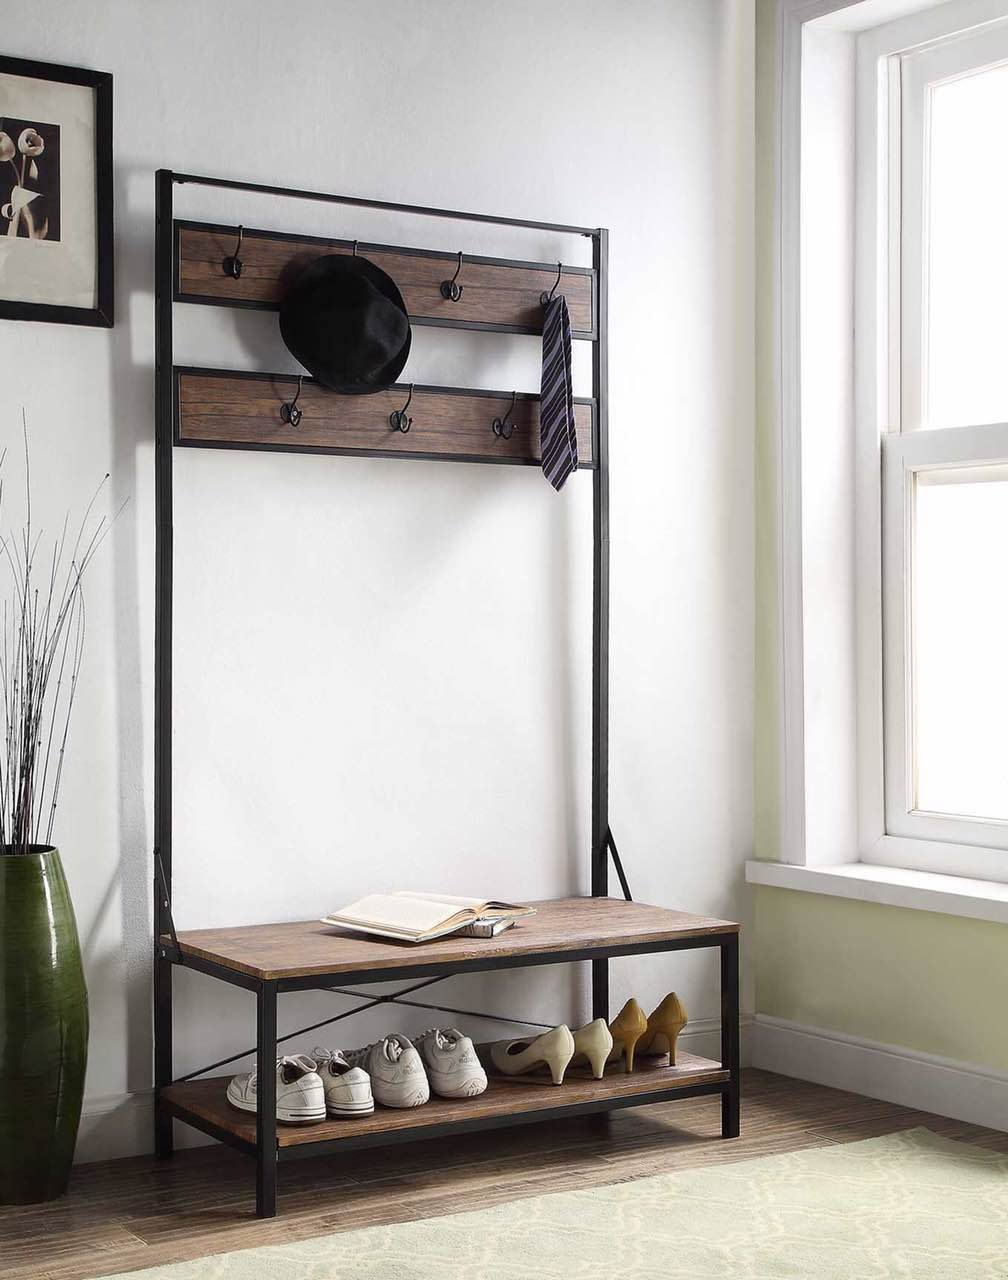 eHomeProducts Vintage Dark Brown Entryway Shoe Bench with Coat Rack Hall Tree Storage Organizer 7 Hooks in Black Metal Finish